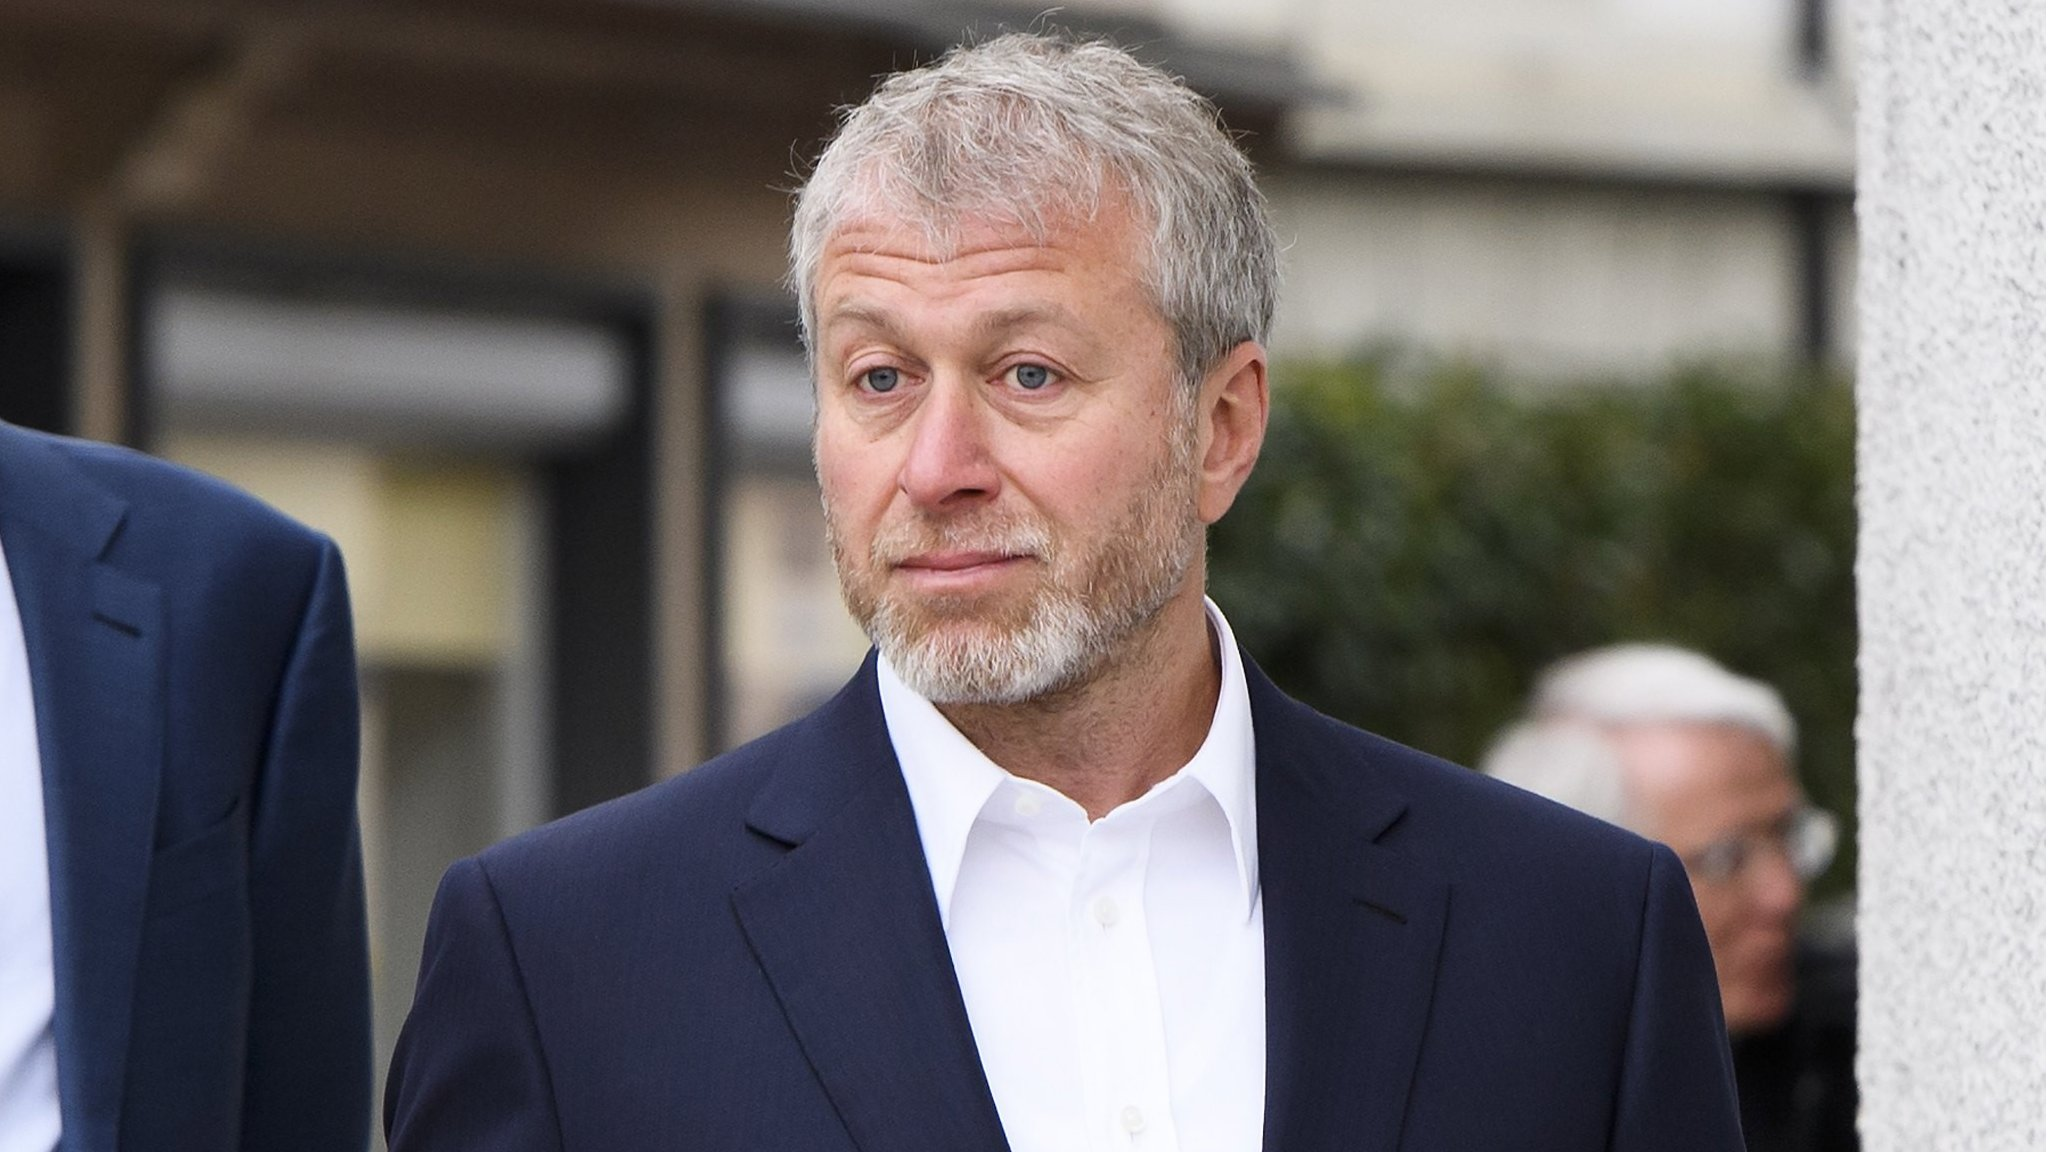 Swiss suspected Chelsea owner Abramovich to be a 'threat'